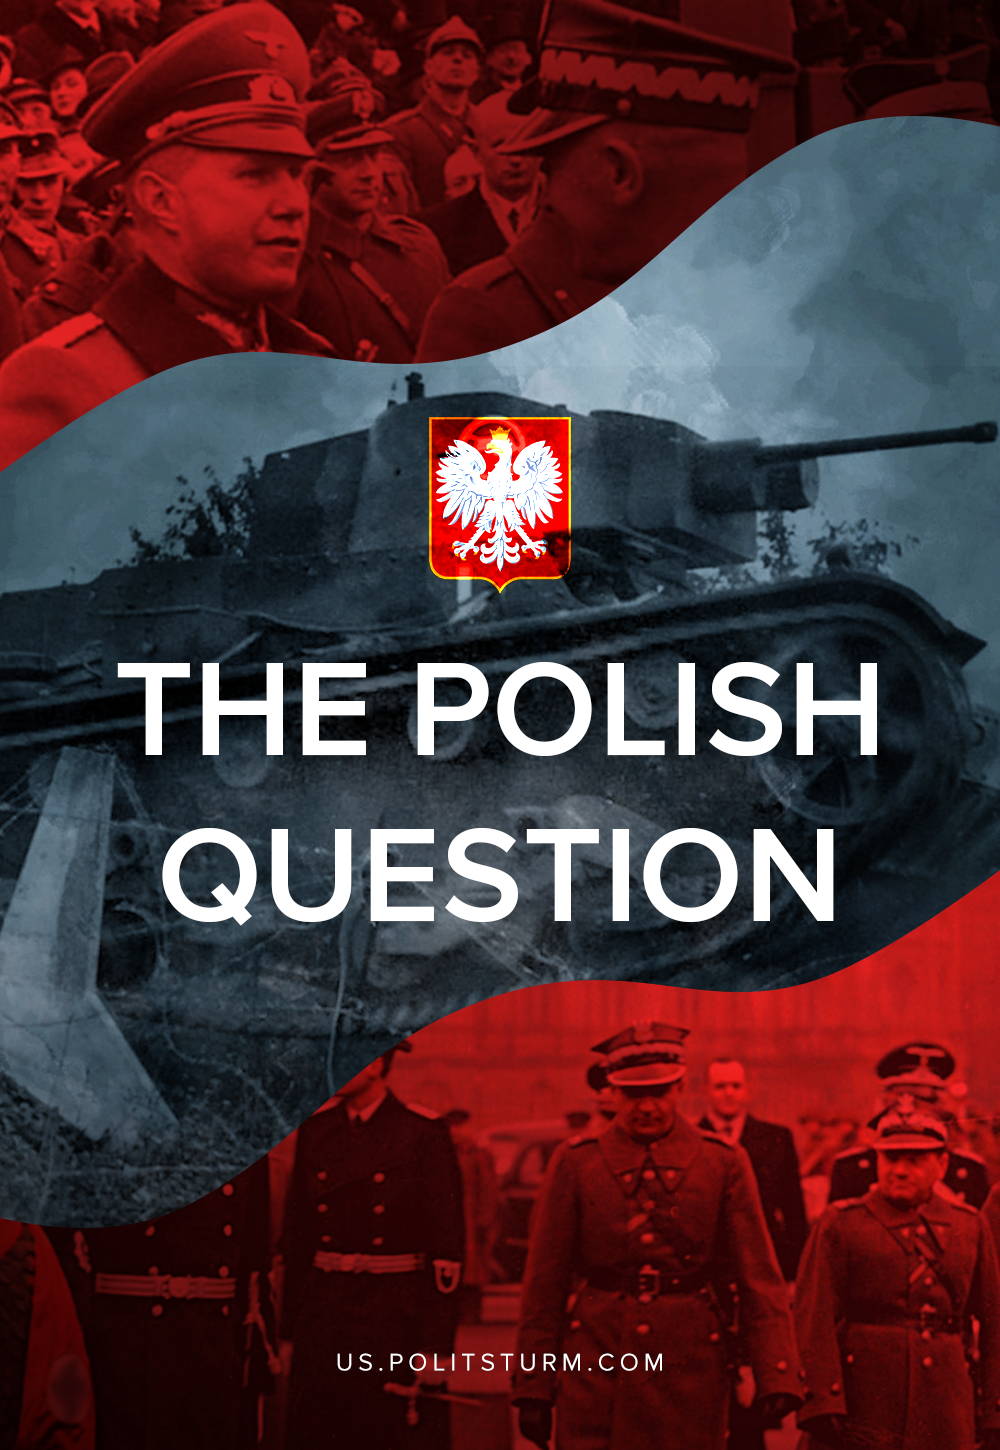 The Polish Question